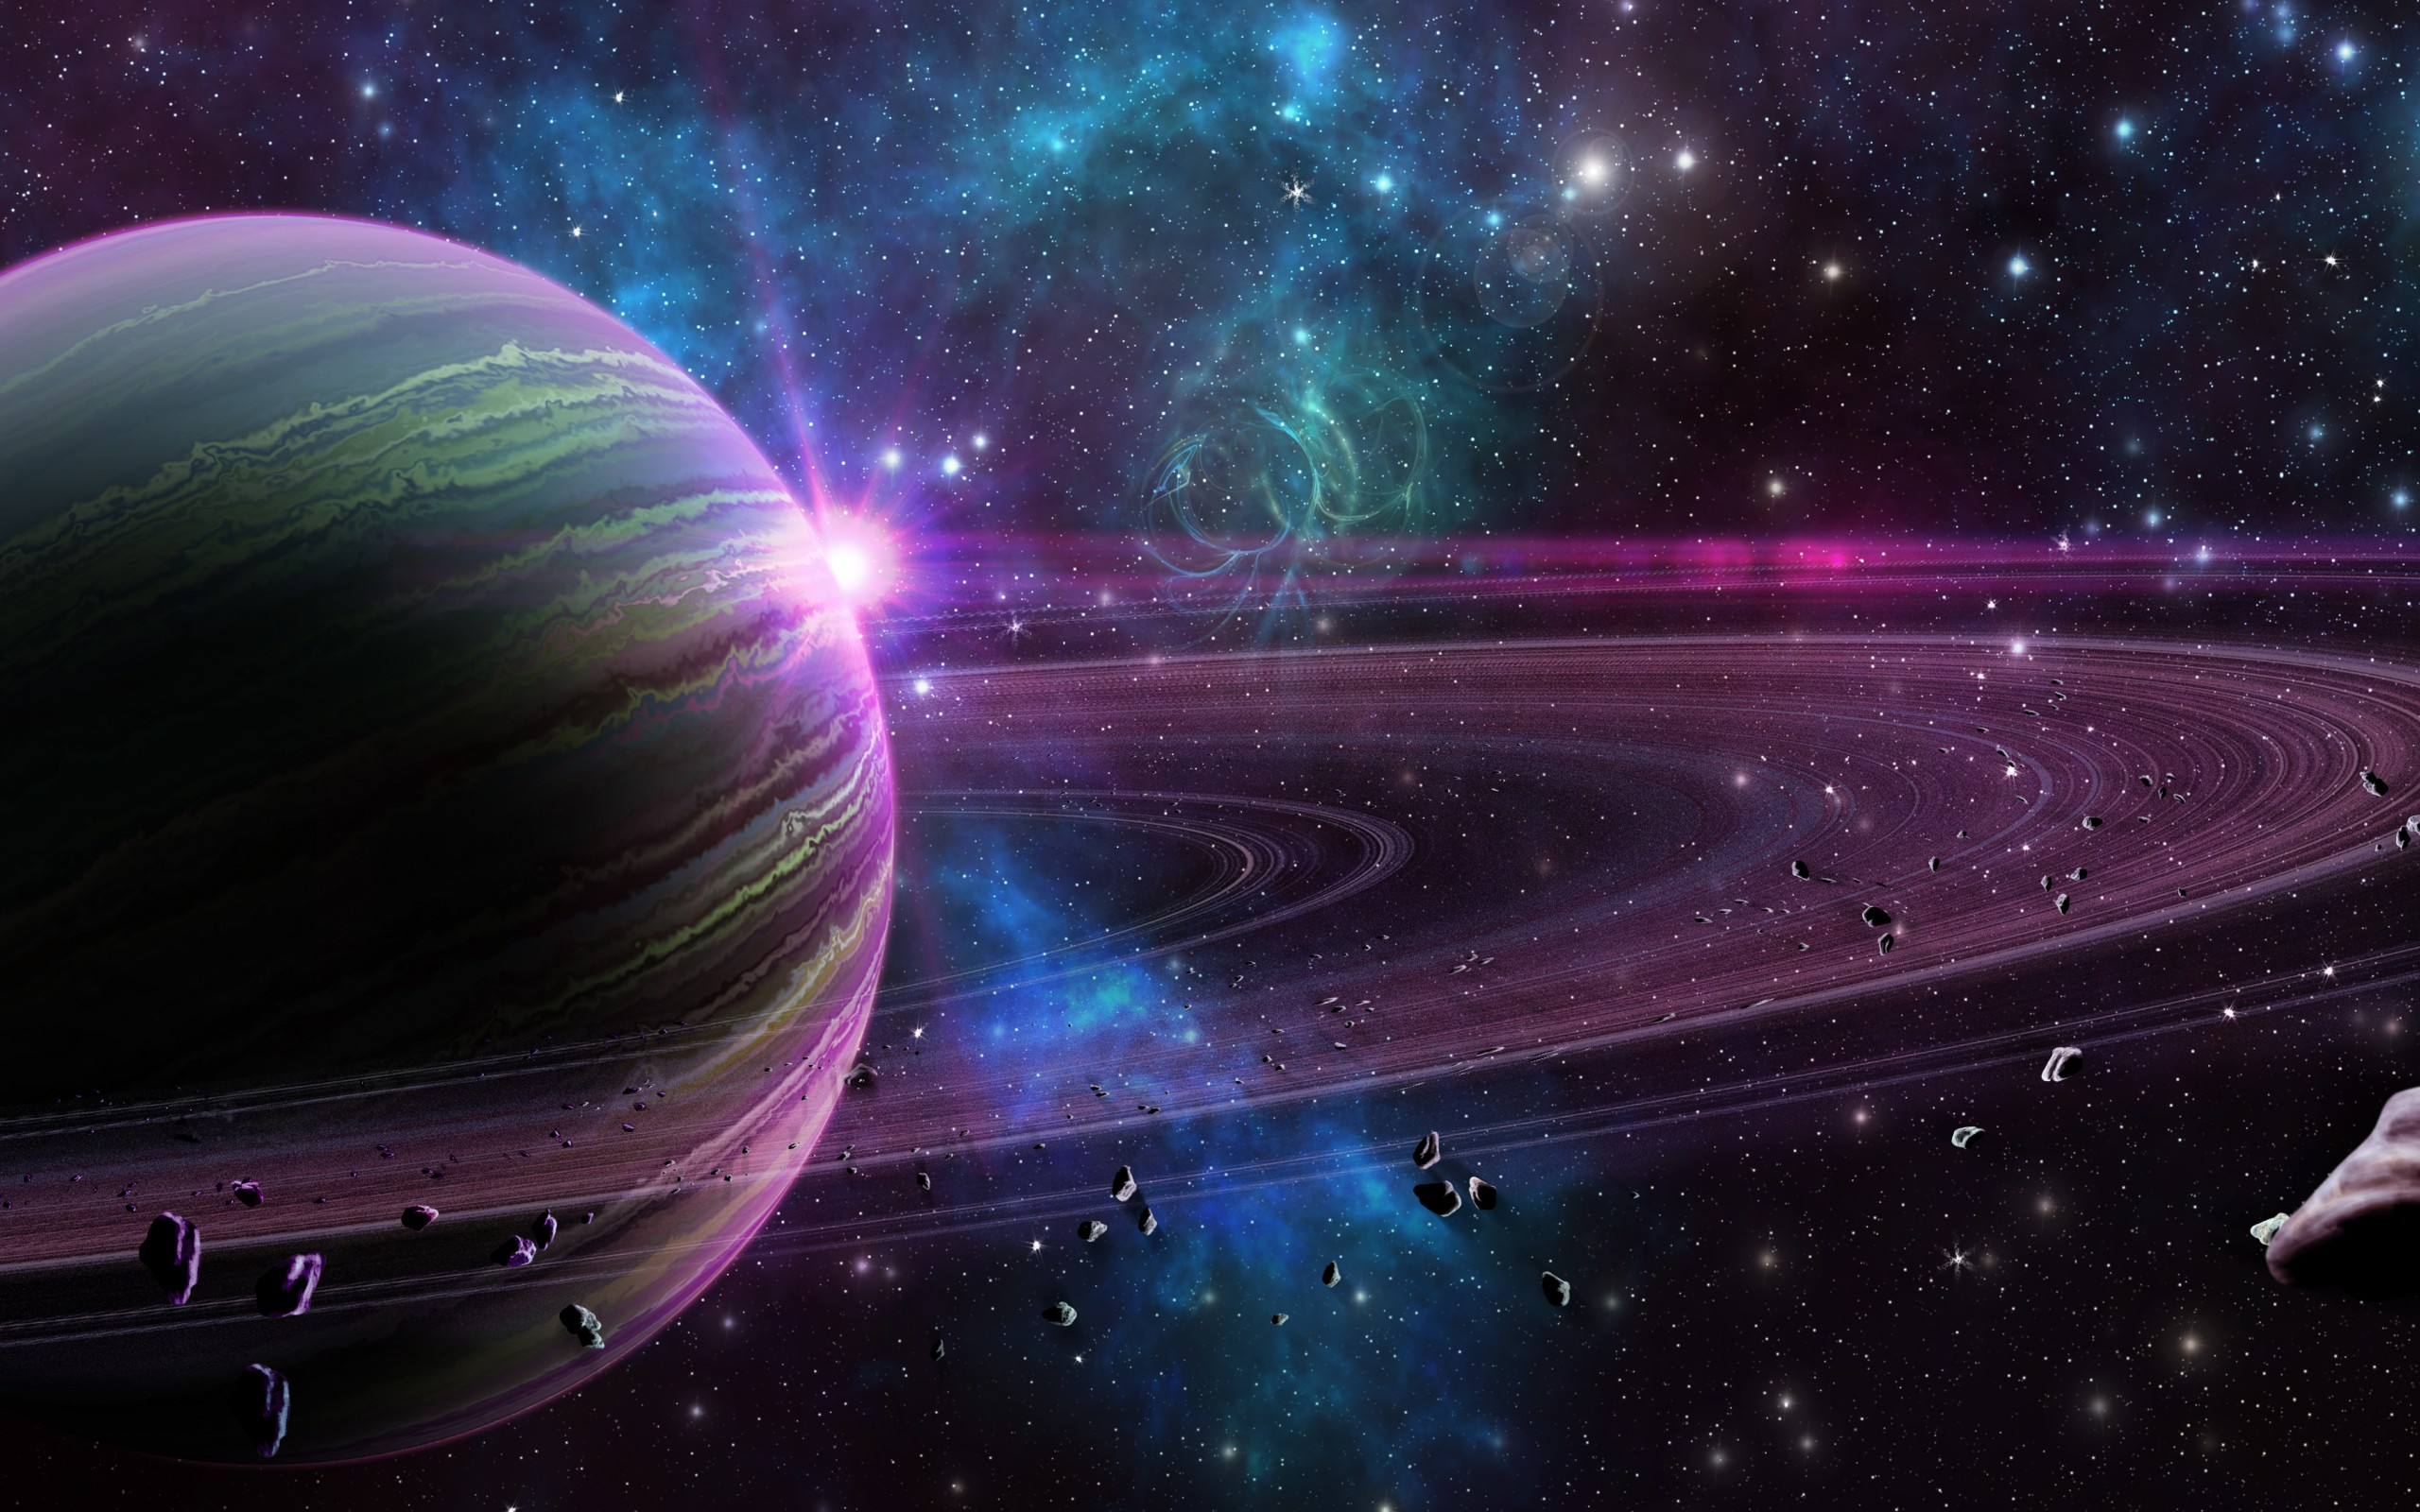 2560x1600 - Planetary Ring Wallpapers 19